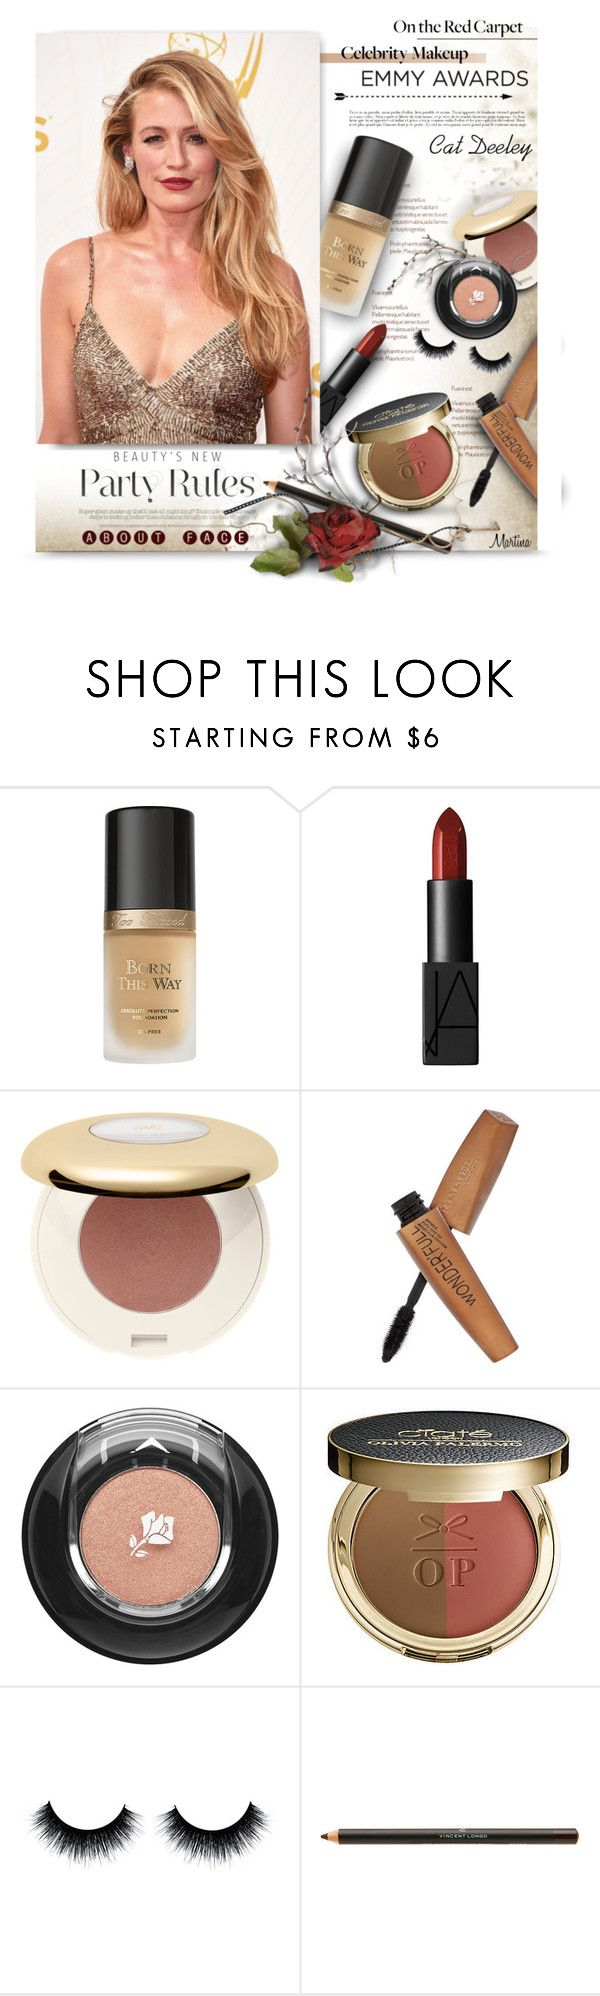 """""""Emmy Awards: Cat Deeley"""" by thewondersoffashion ❤ liked on Polyvore featuring beauty, Too Faced Cosmetics, NARS Cosmetics, H&M, Rimmel, Lancôme, Ciaté, Vincent Longo, RedCarpet and Beauty"""